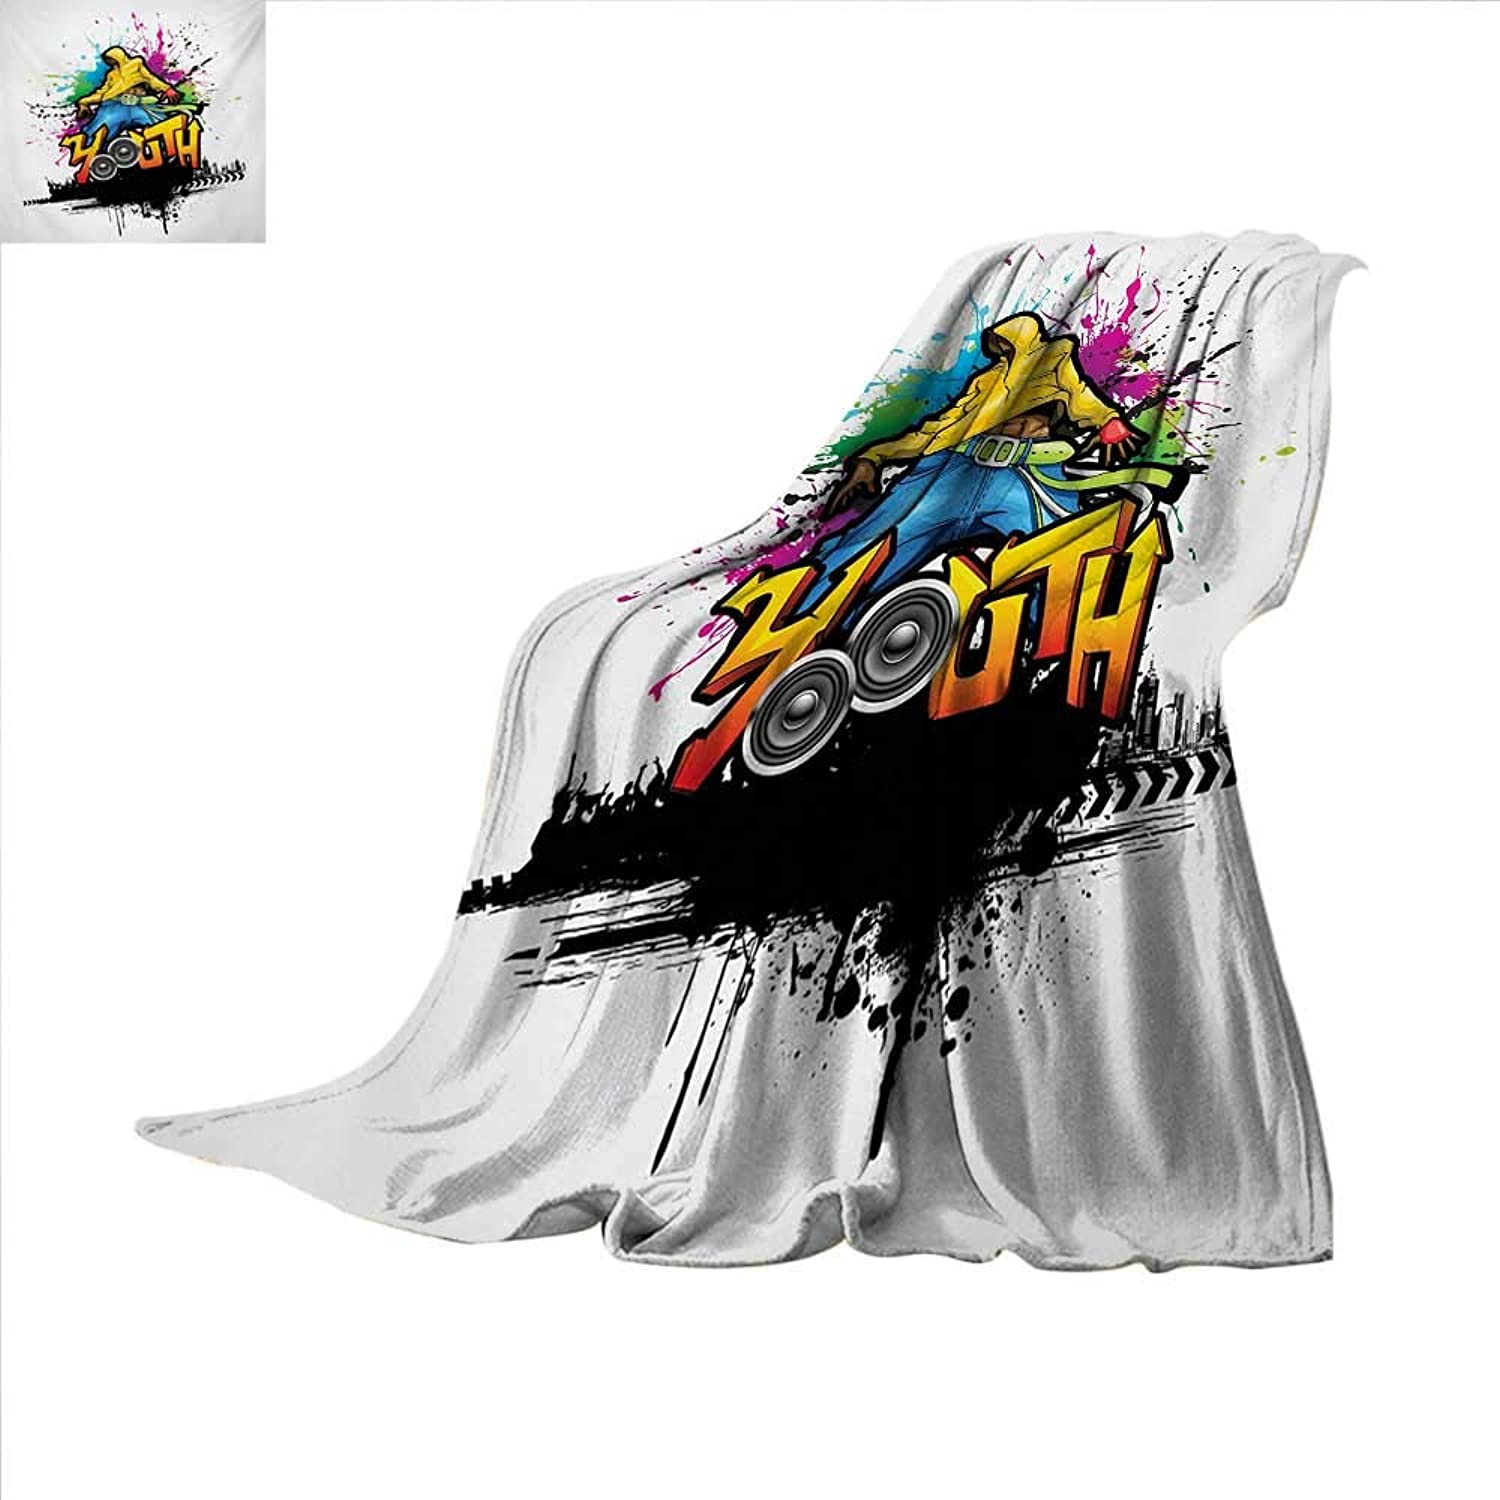 Youth Throw Blanket Young Man Hip Hop Culture Graffiti Art and Street Culture Performer colorful Grunge Velvet Plush Throw Blanket 60 x 60 inch Multicolor